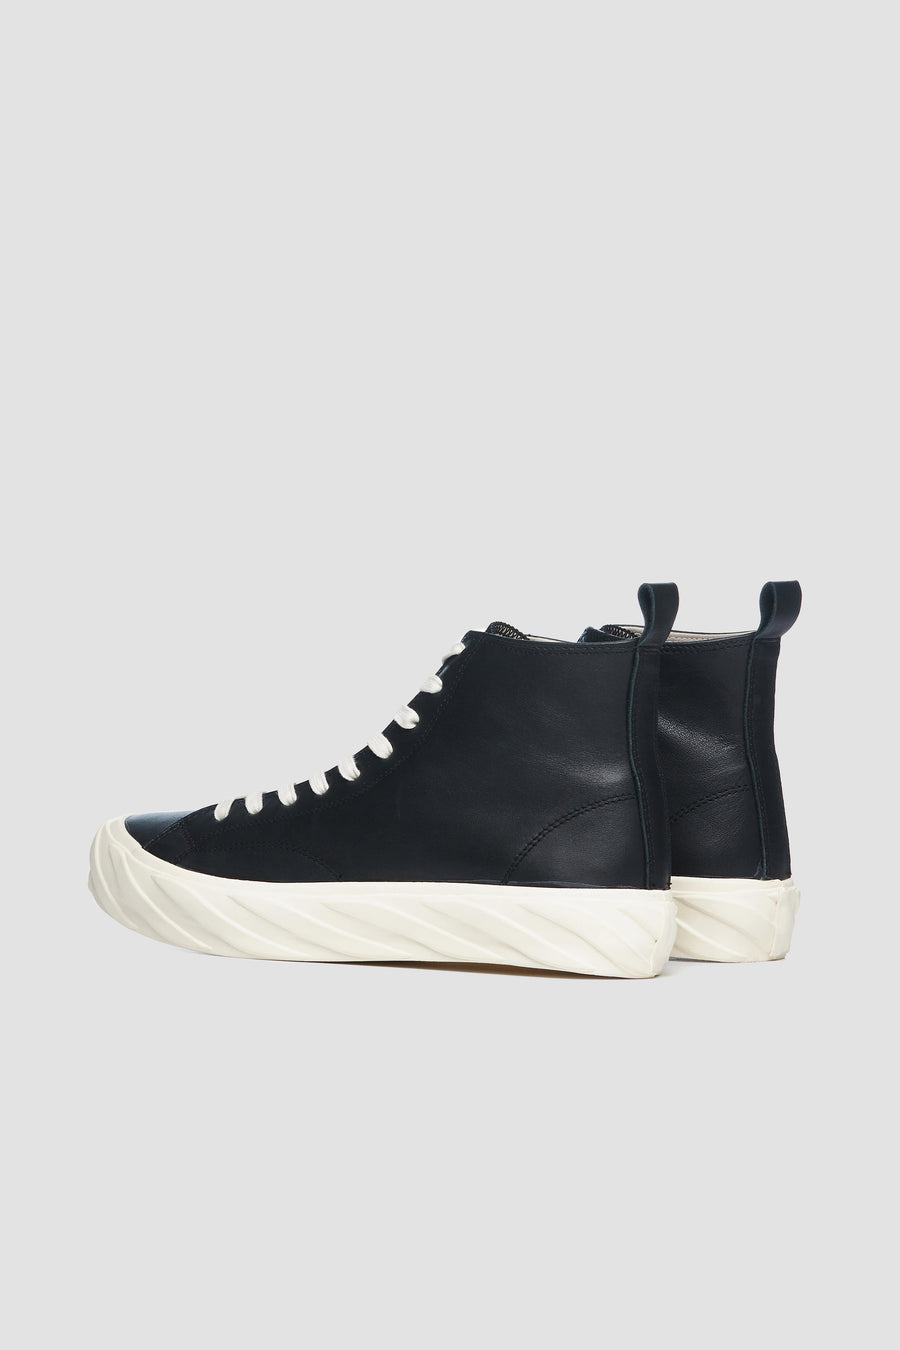 AGE - Hi-Top Leather Sneakers (black/white)